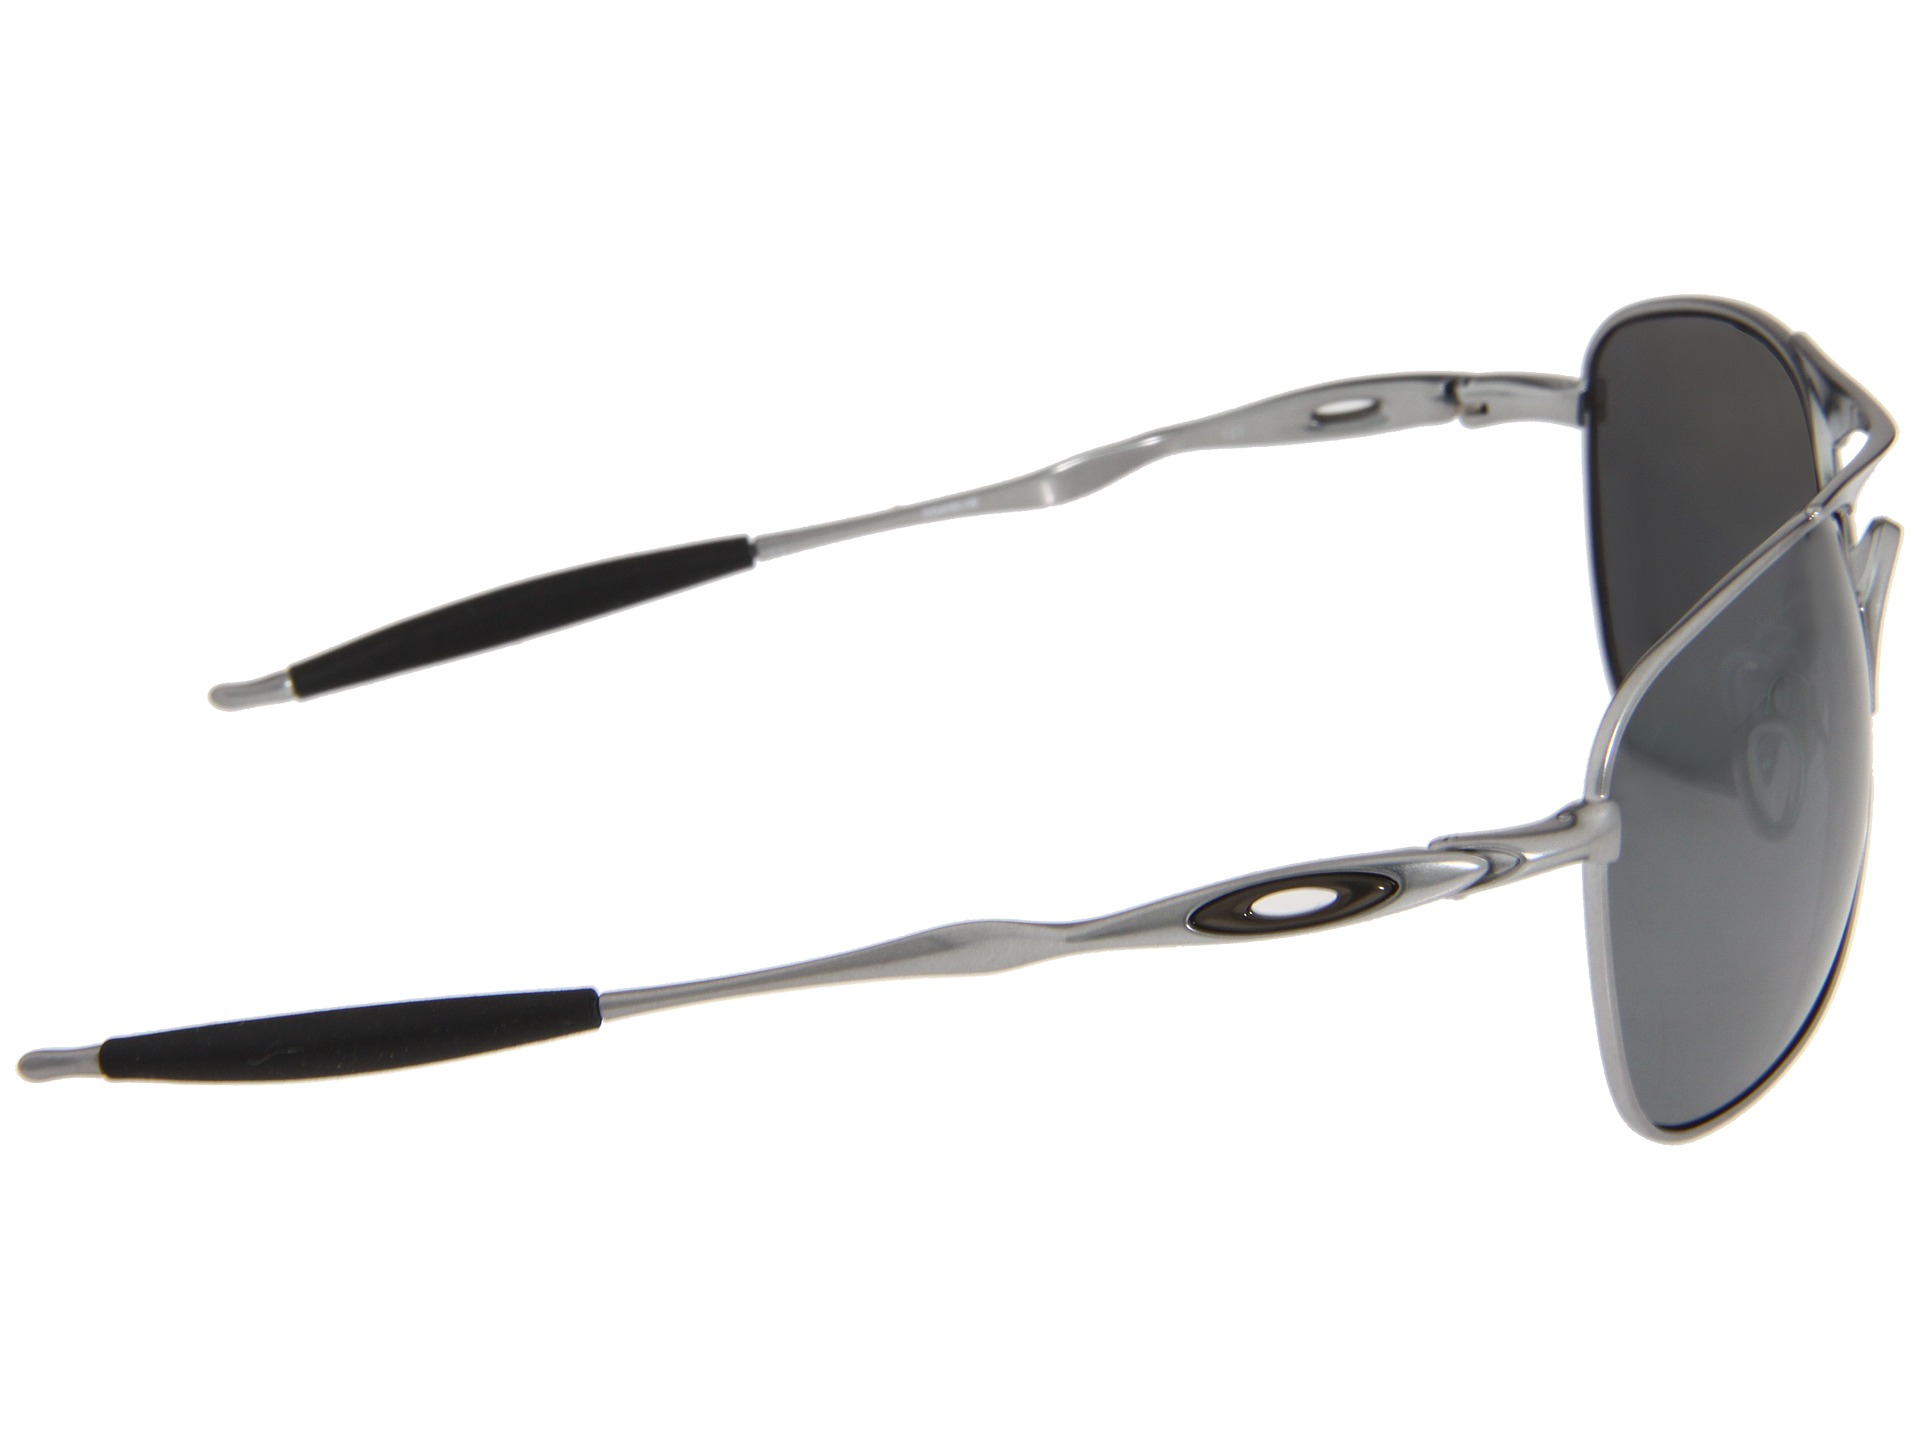 e2693b24d3 Oakley Crosshair Lead L Black Iridium Polarized « Heritage Malta